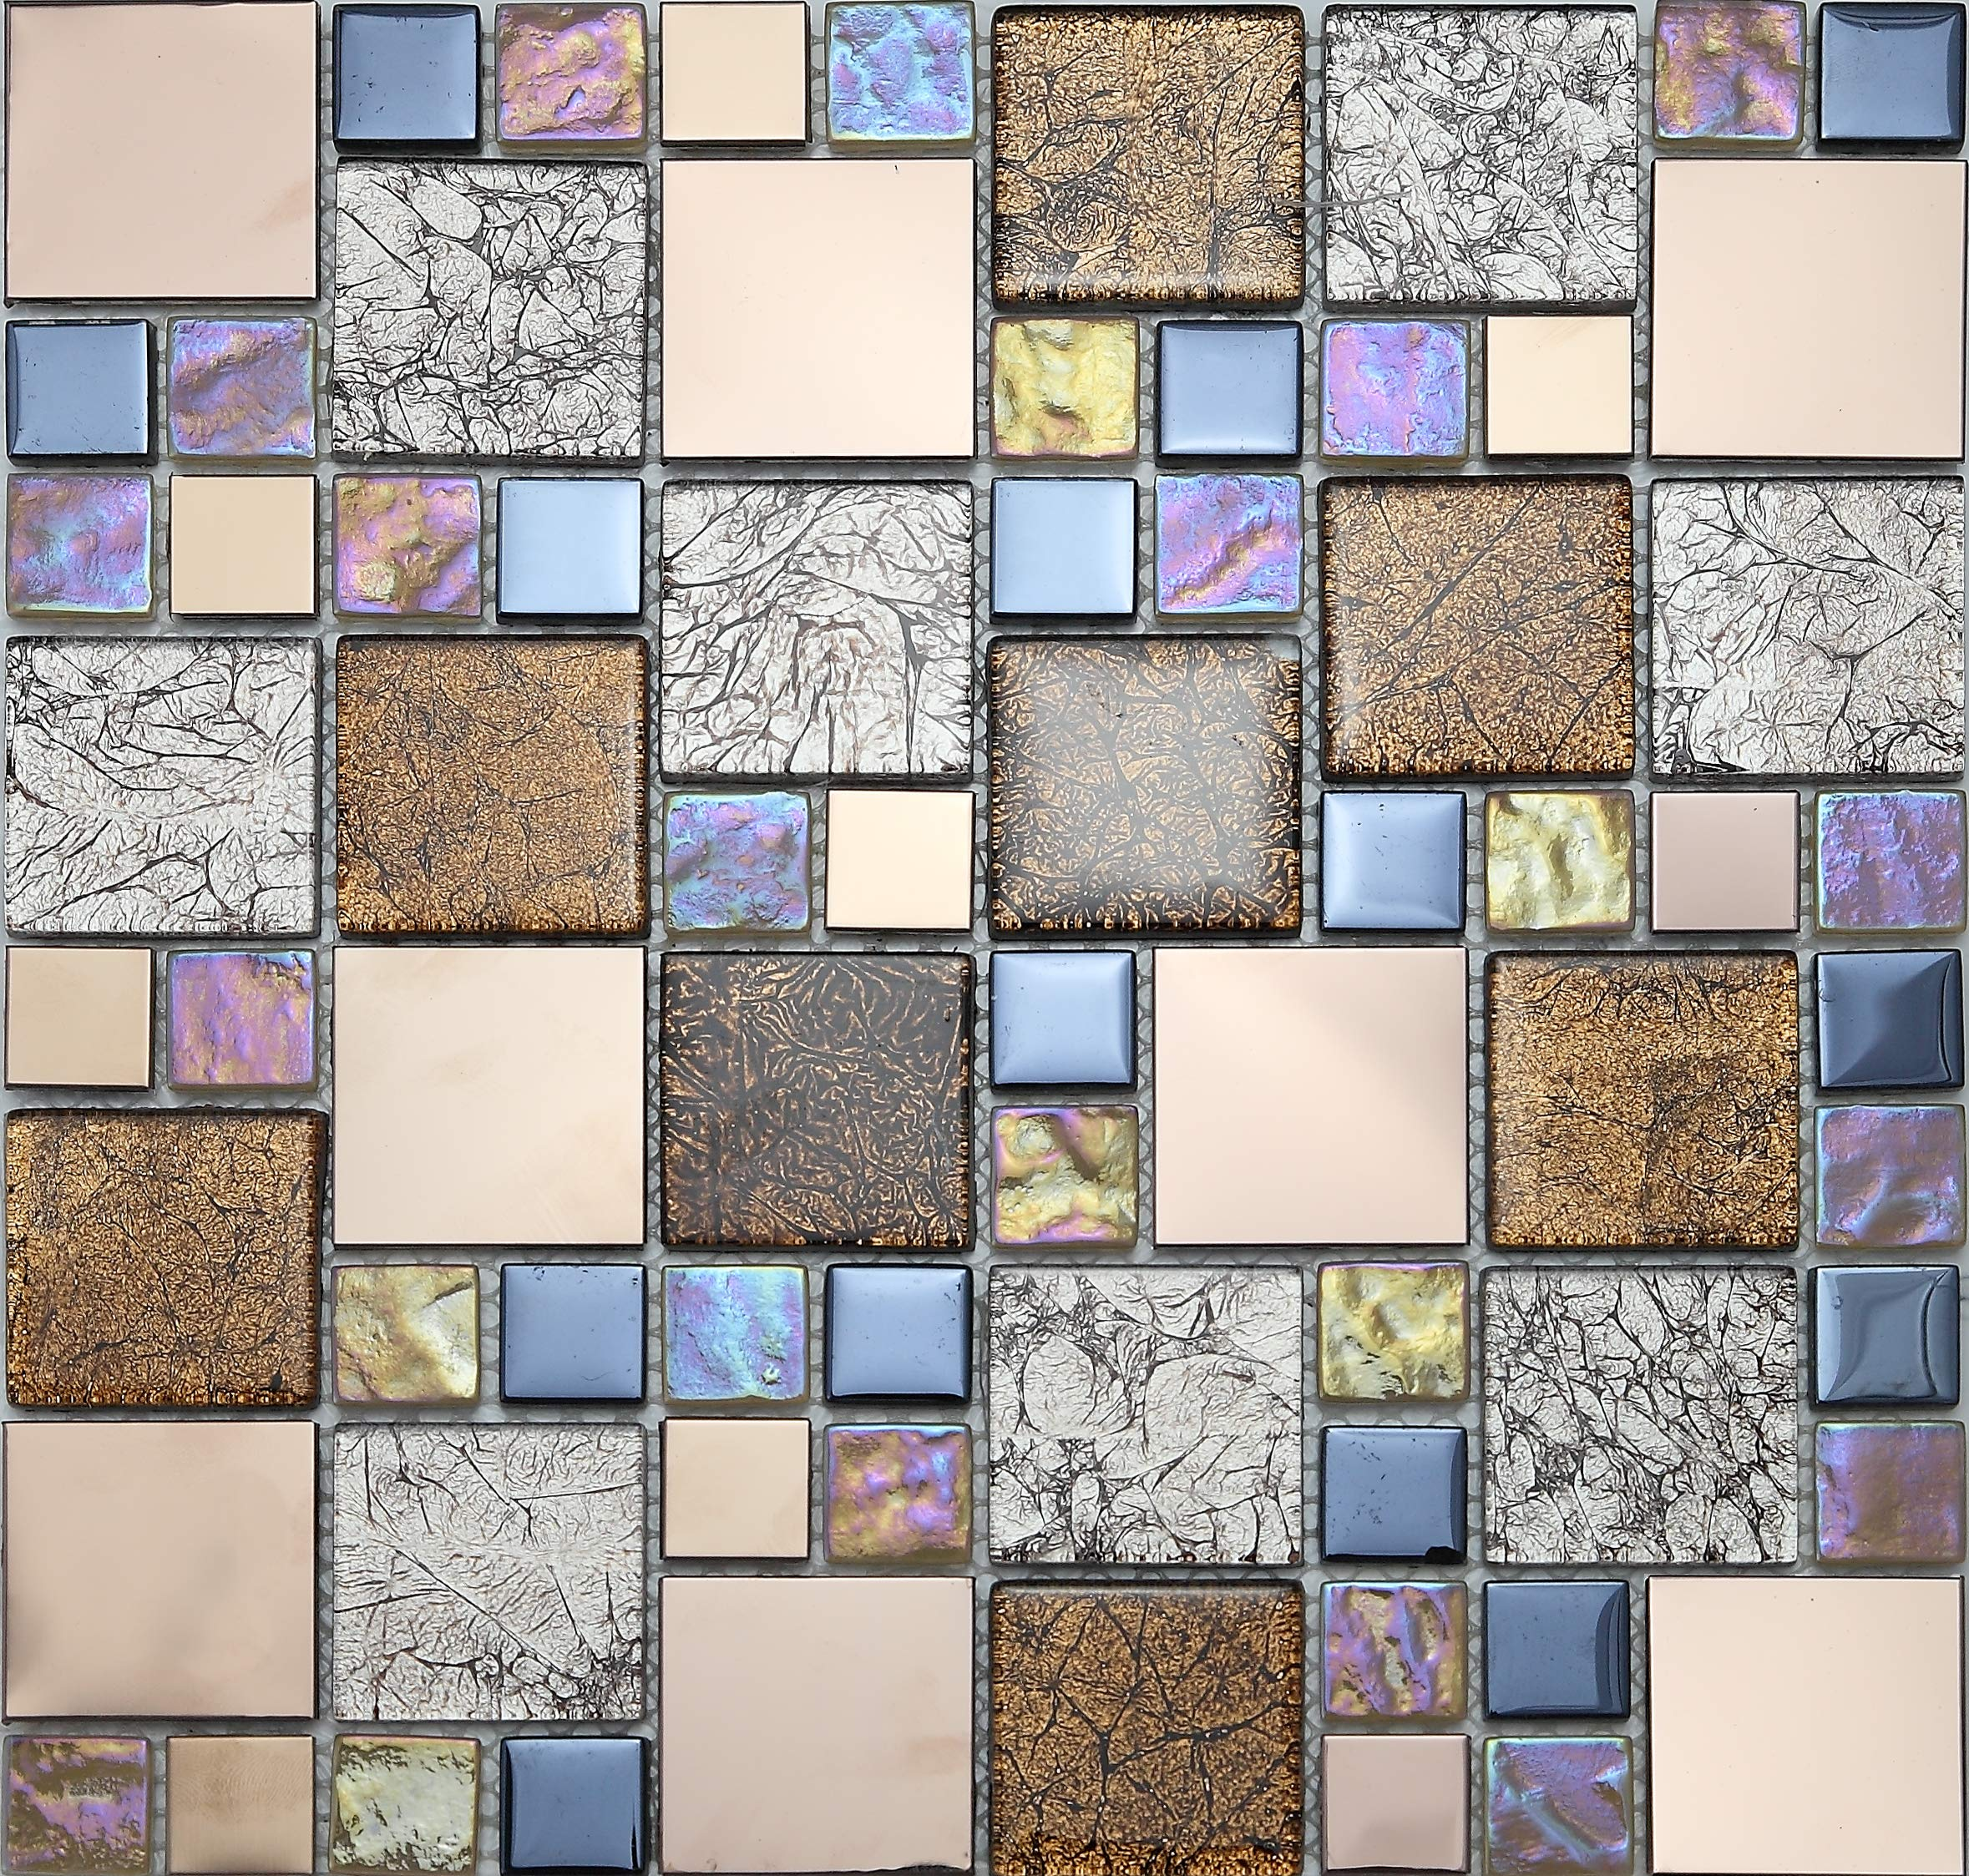 Iridescent Glass Metal Mosaic Tiles for Wall, LSGD01 by LSDECO